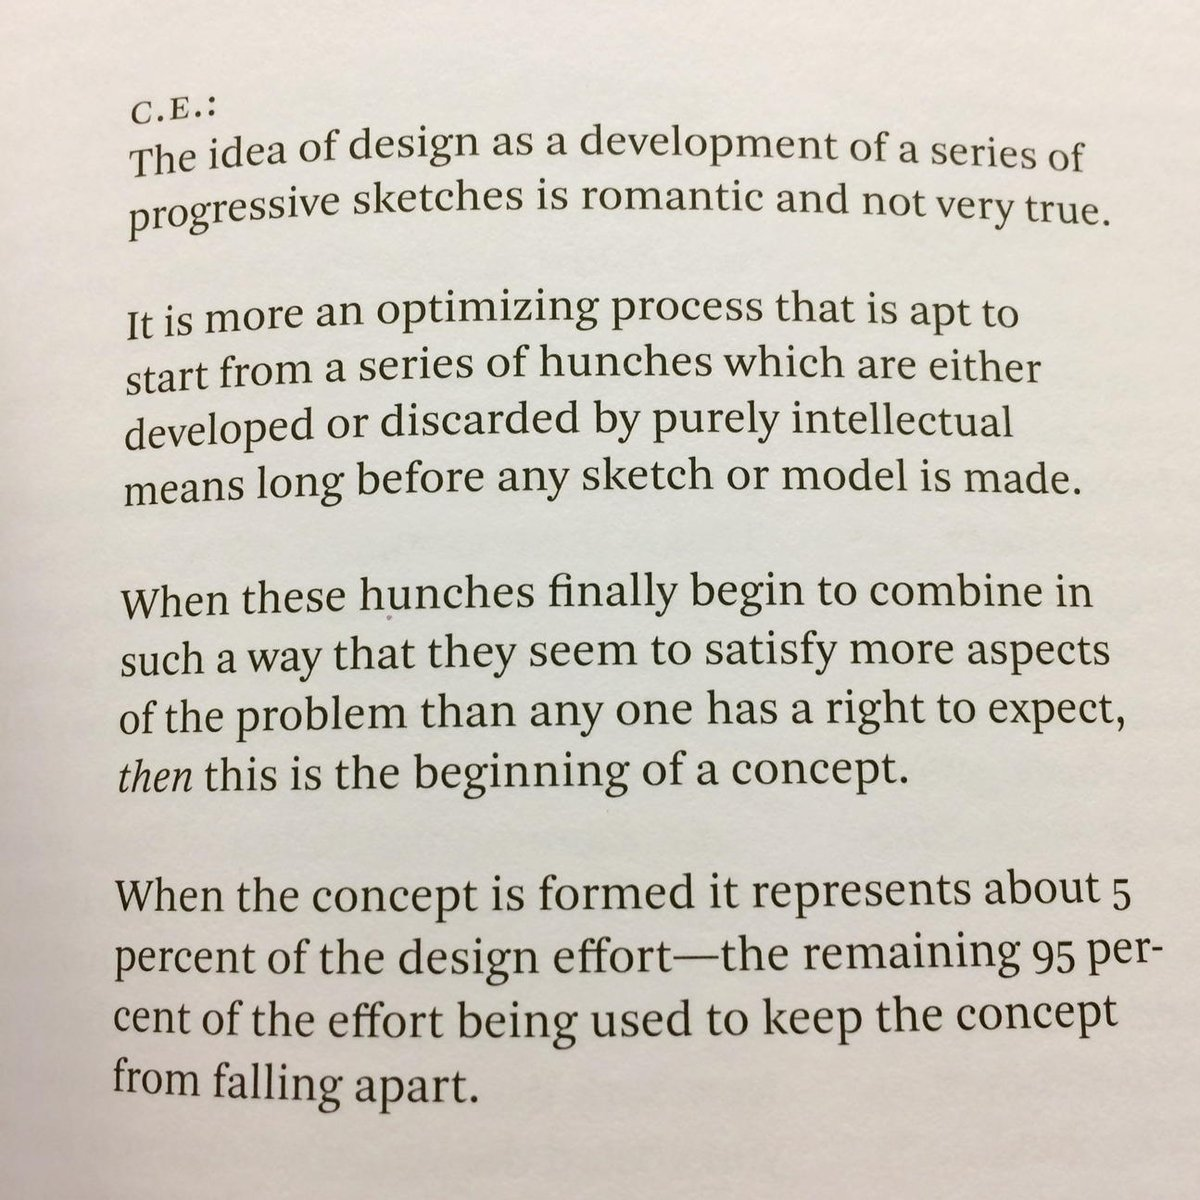 Charles and Ray Eames, handwritten notes on design (1964). Last paragraph FTW. https://t.co/w5b2AGziQr